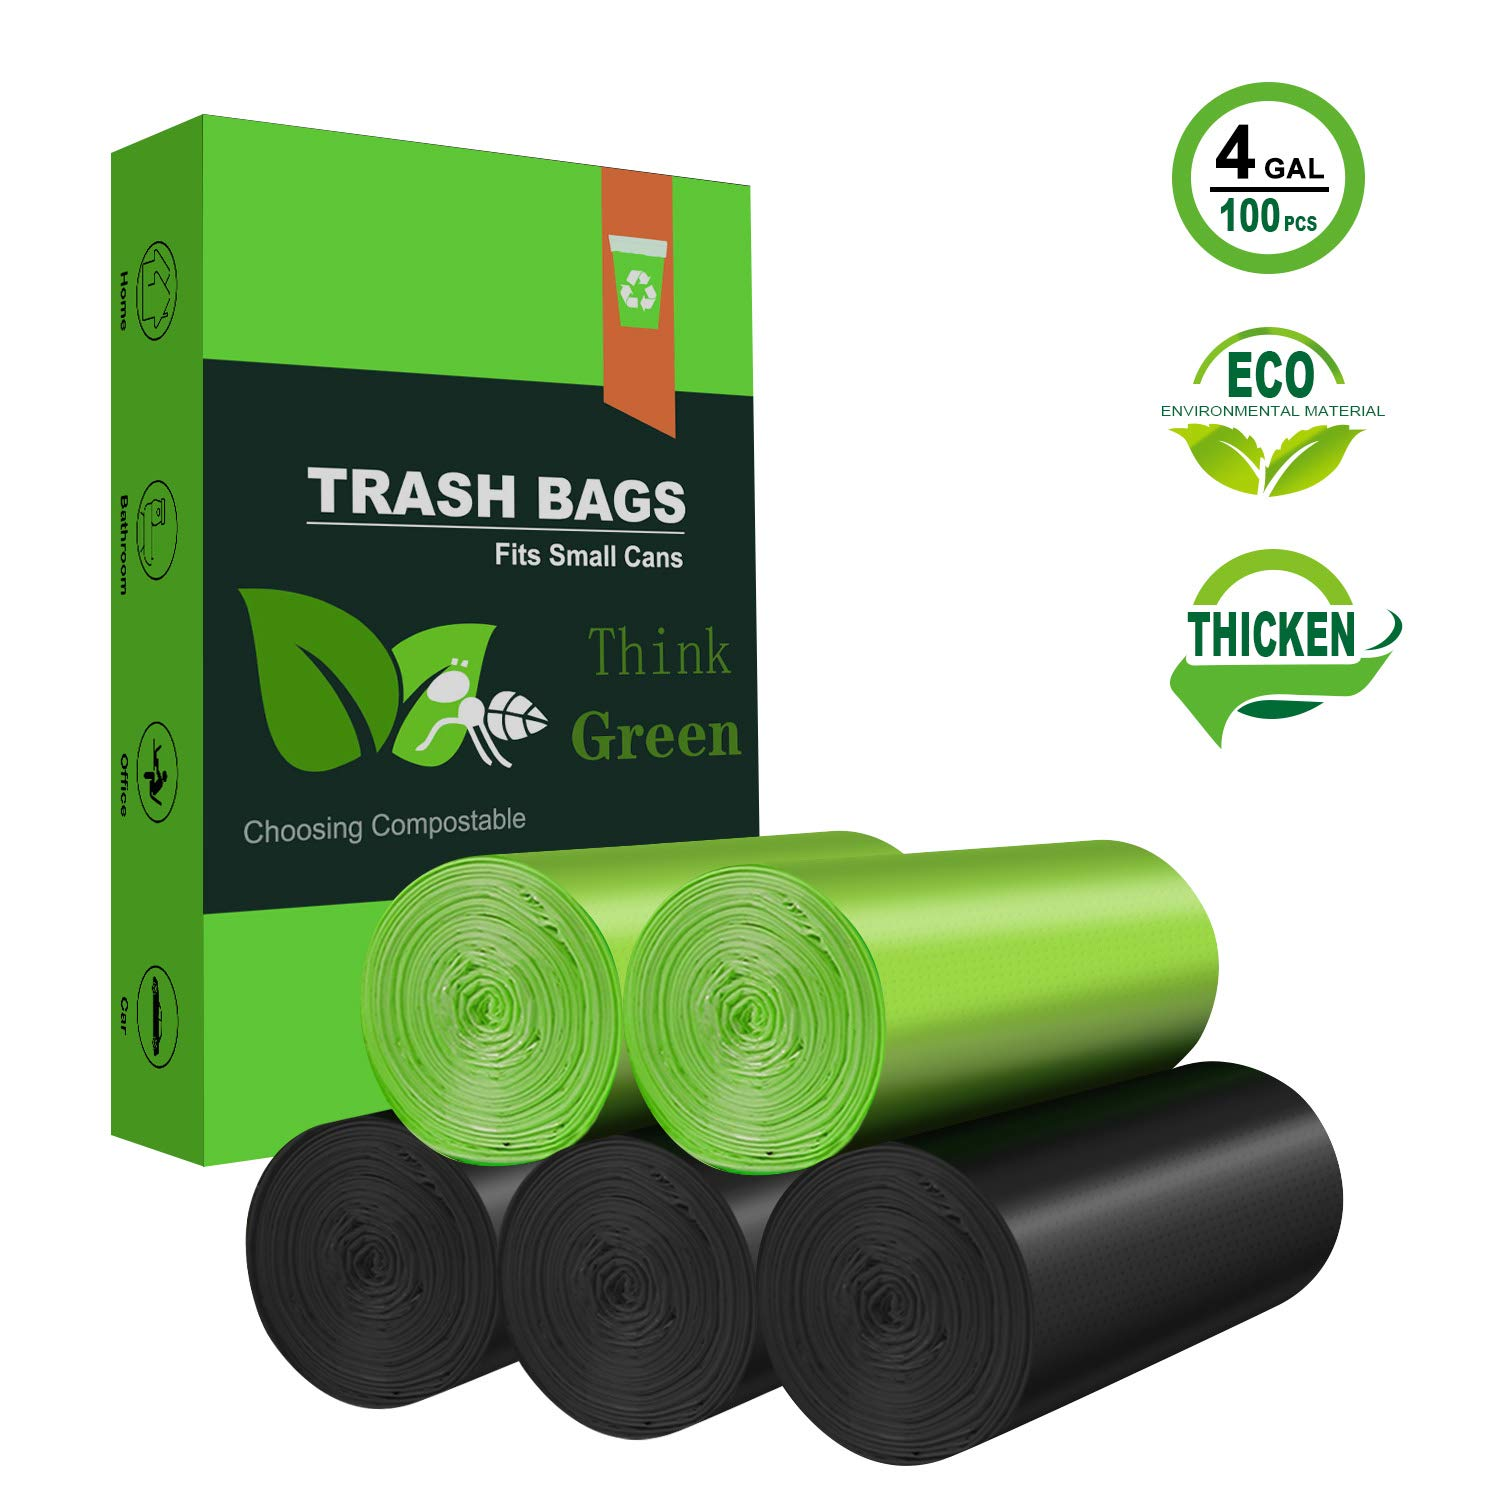 Biodegradable Garbage Bags,4-6 Gallon Small Trash Bags,100 Counts Small Garbage Bags Leak Proof Compostable Bags Wastebasket Liners for Office,Home,Bathroom,Bedroom,Car,Kitchen,Pet(Green+Black) Price: $12.59